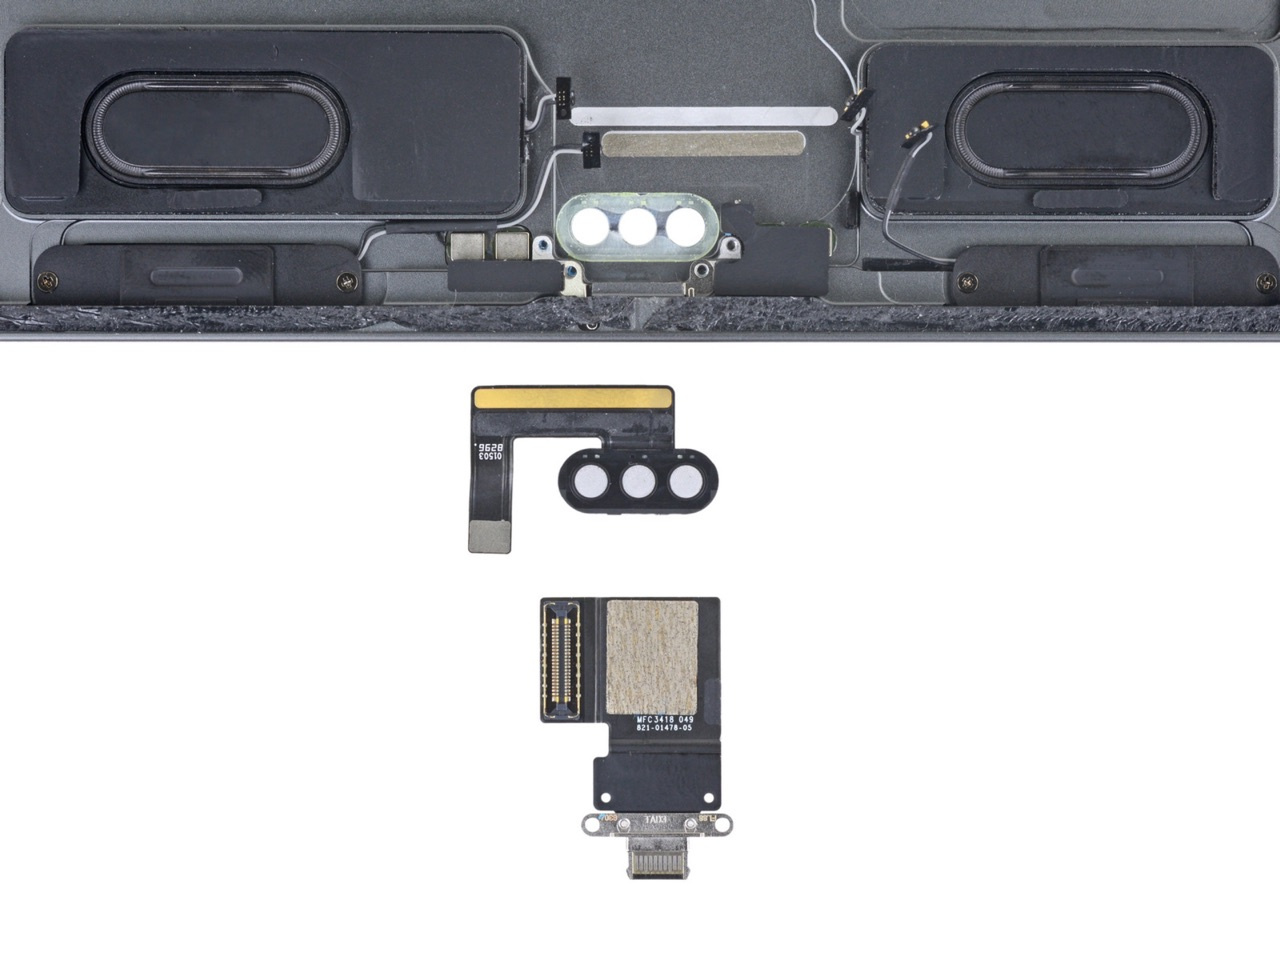 iPad Pro 2018 teardown van iFixit met USB-C.